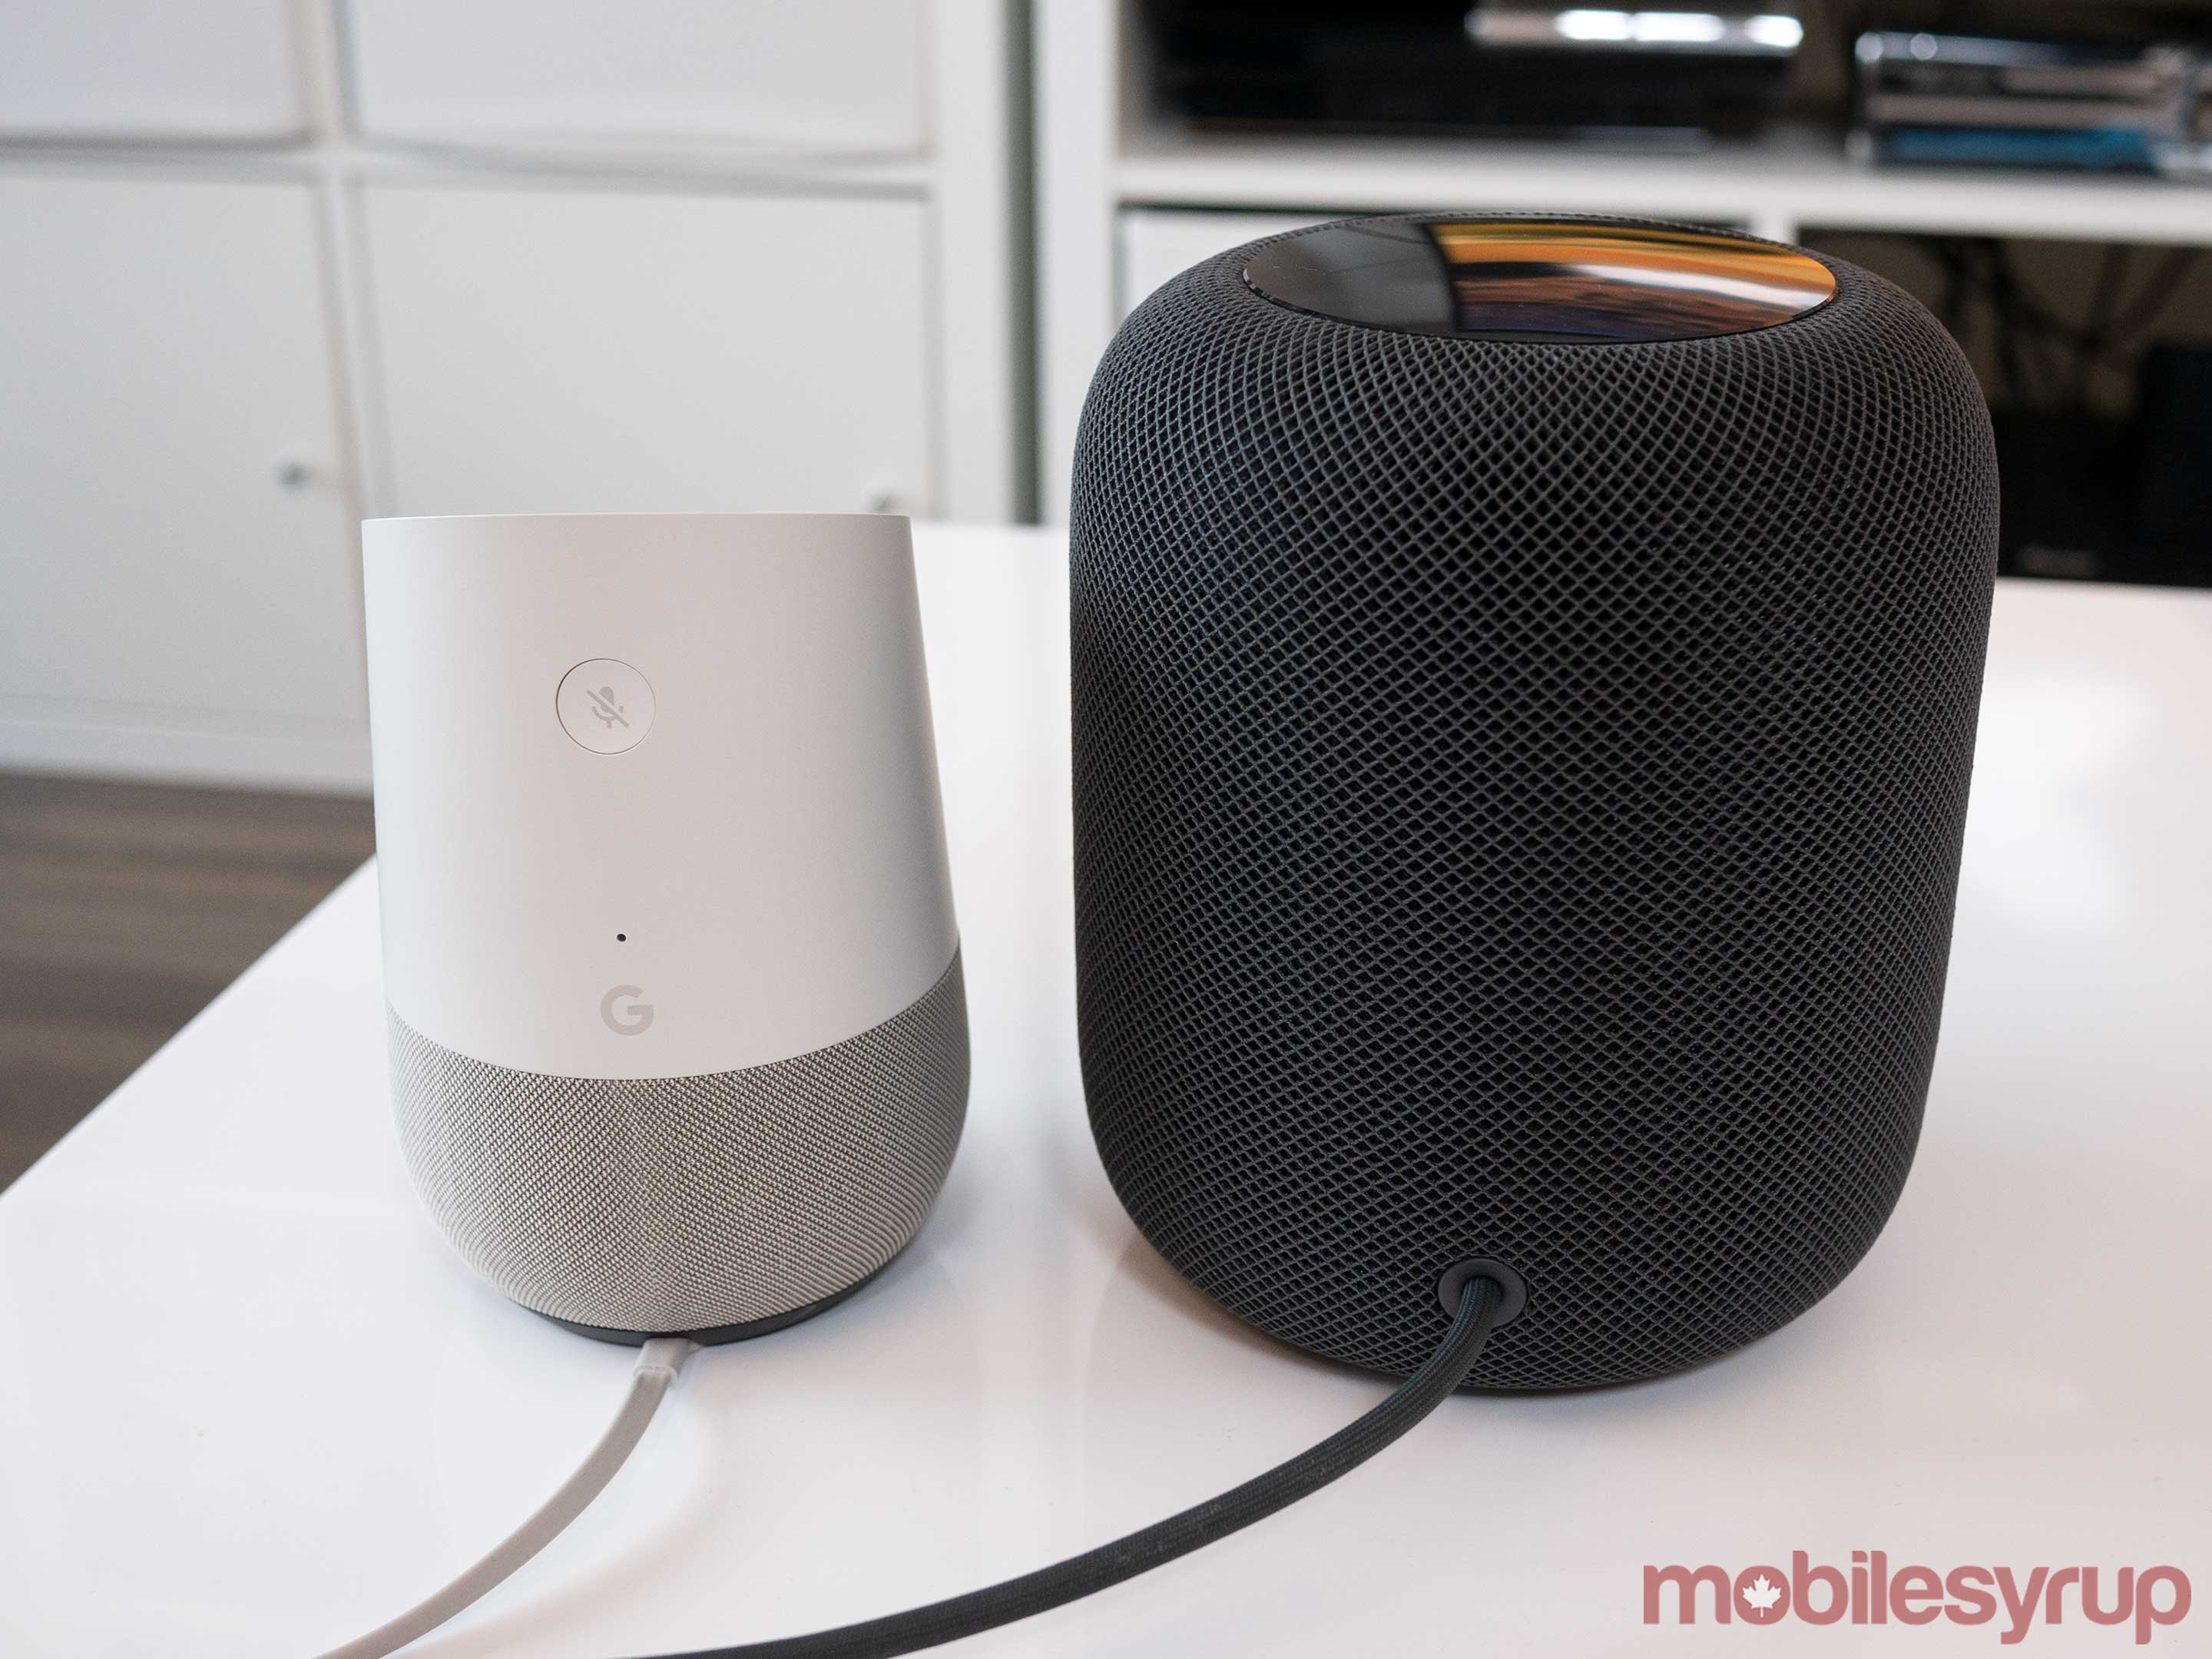 HomePod vs Google Home